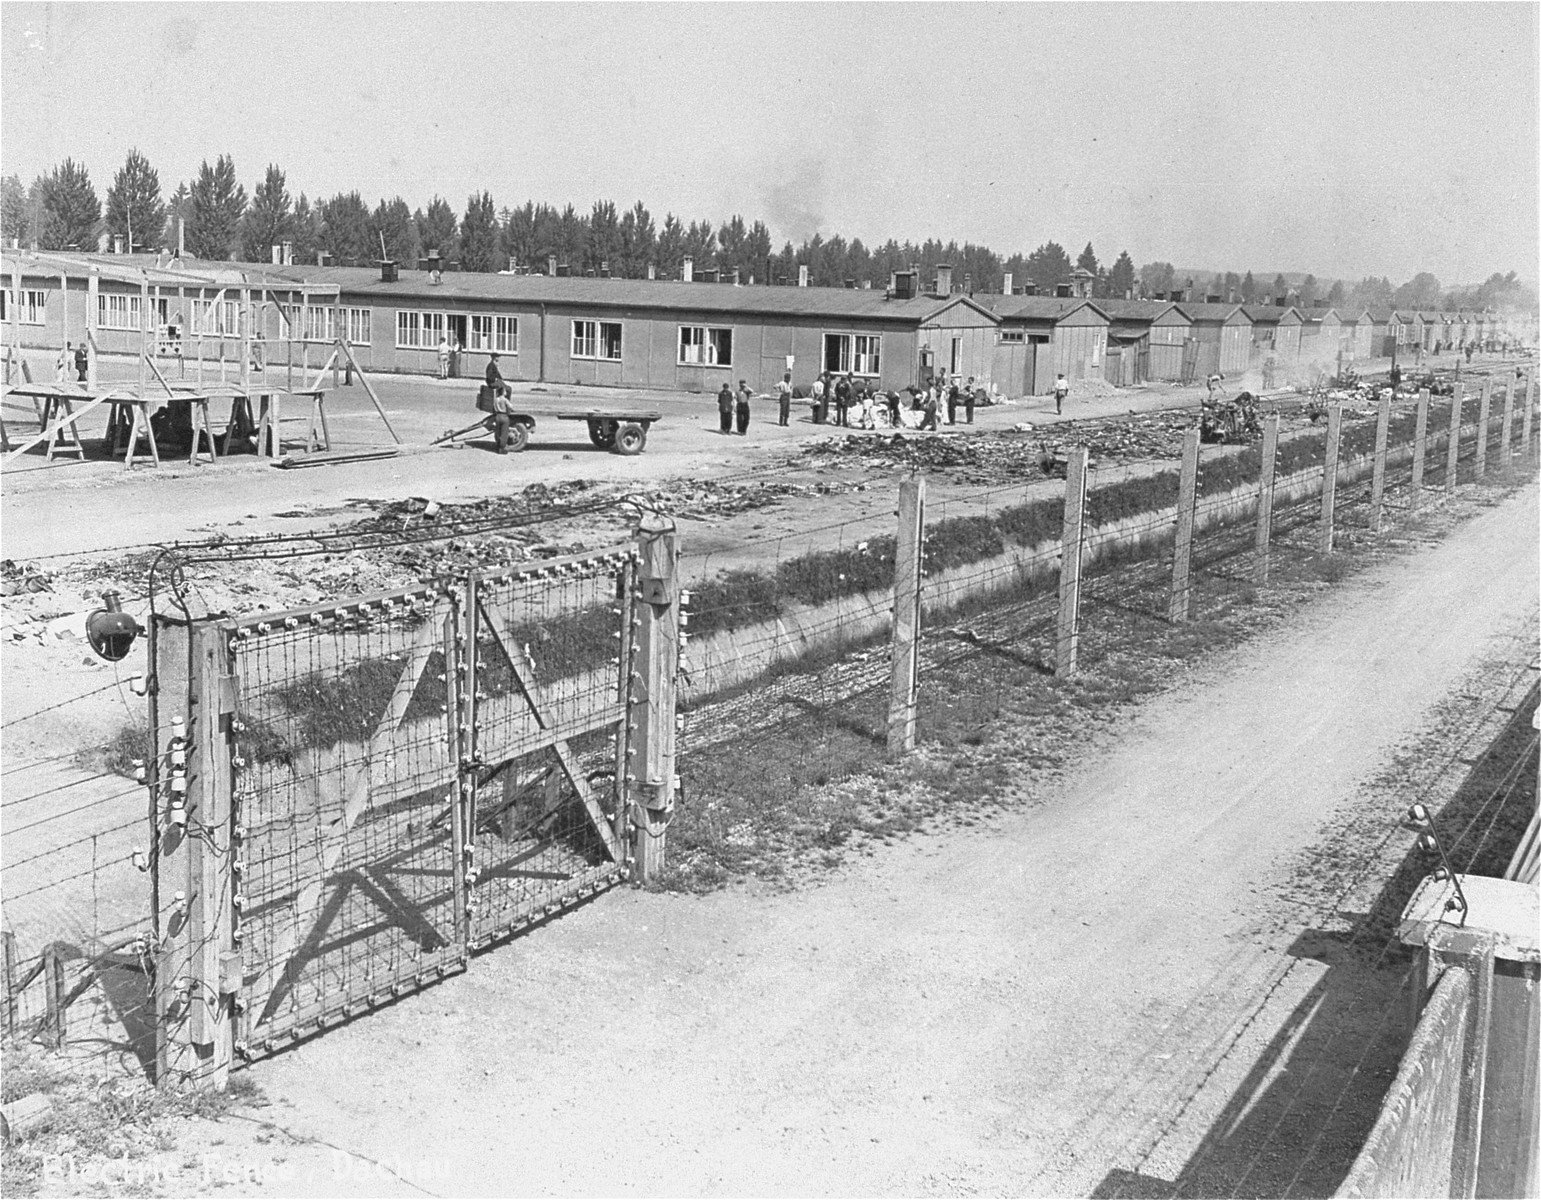 A section of the Dachau concentration camp.